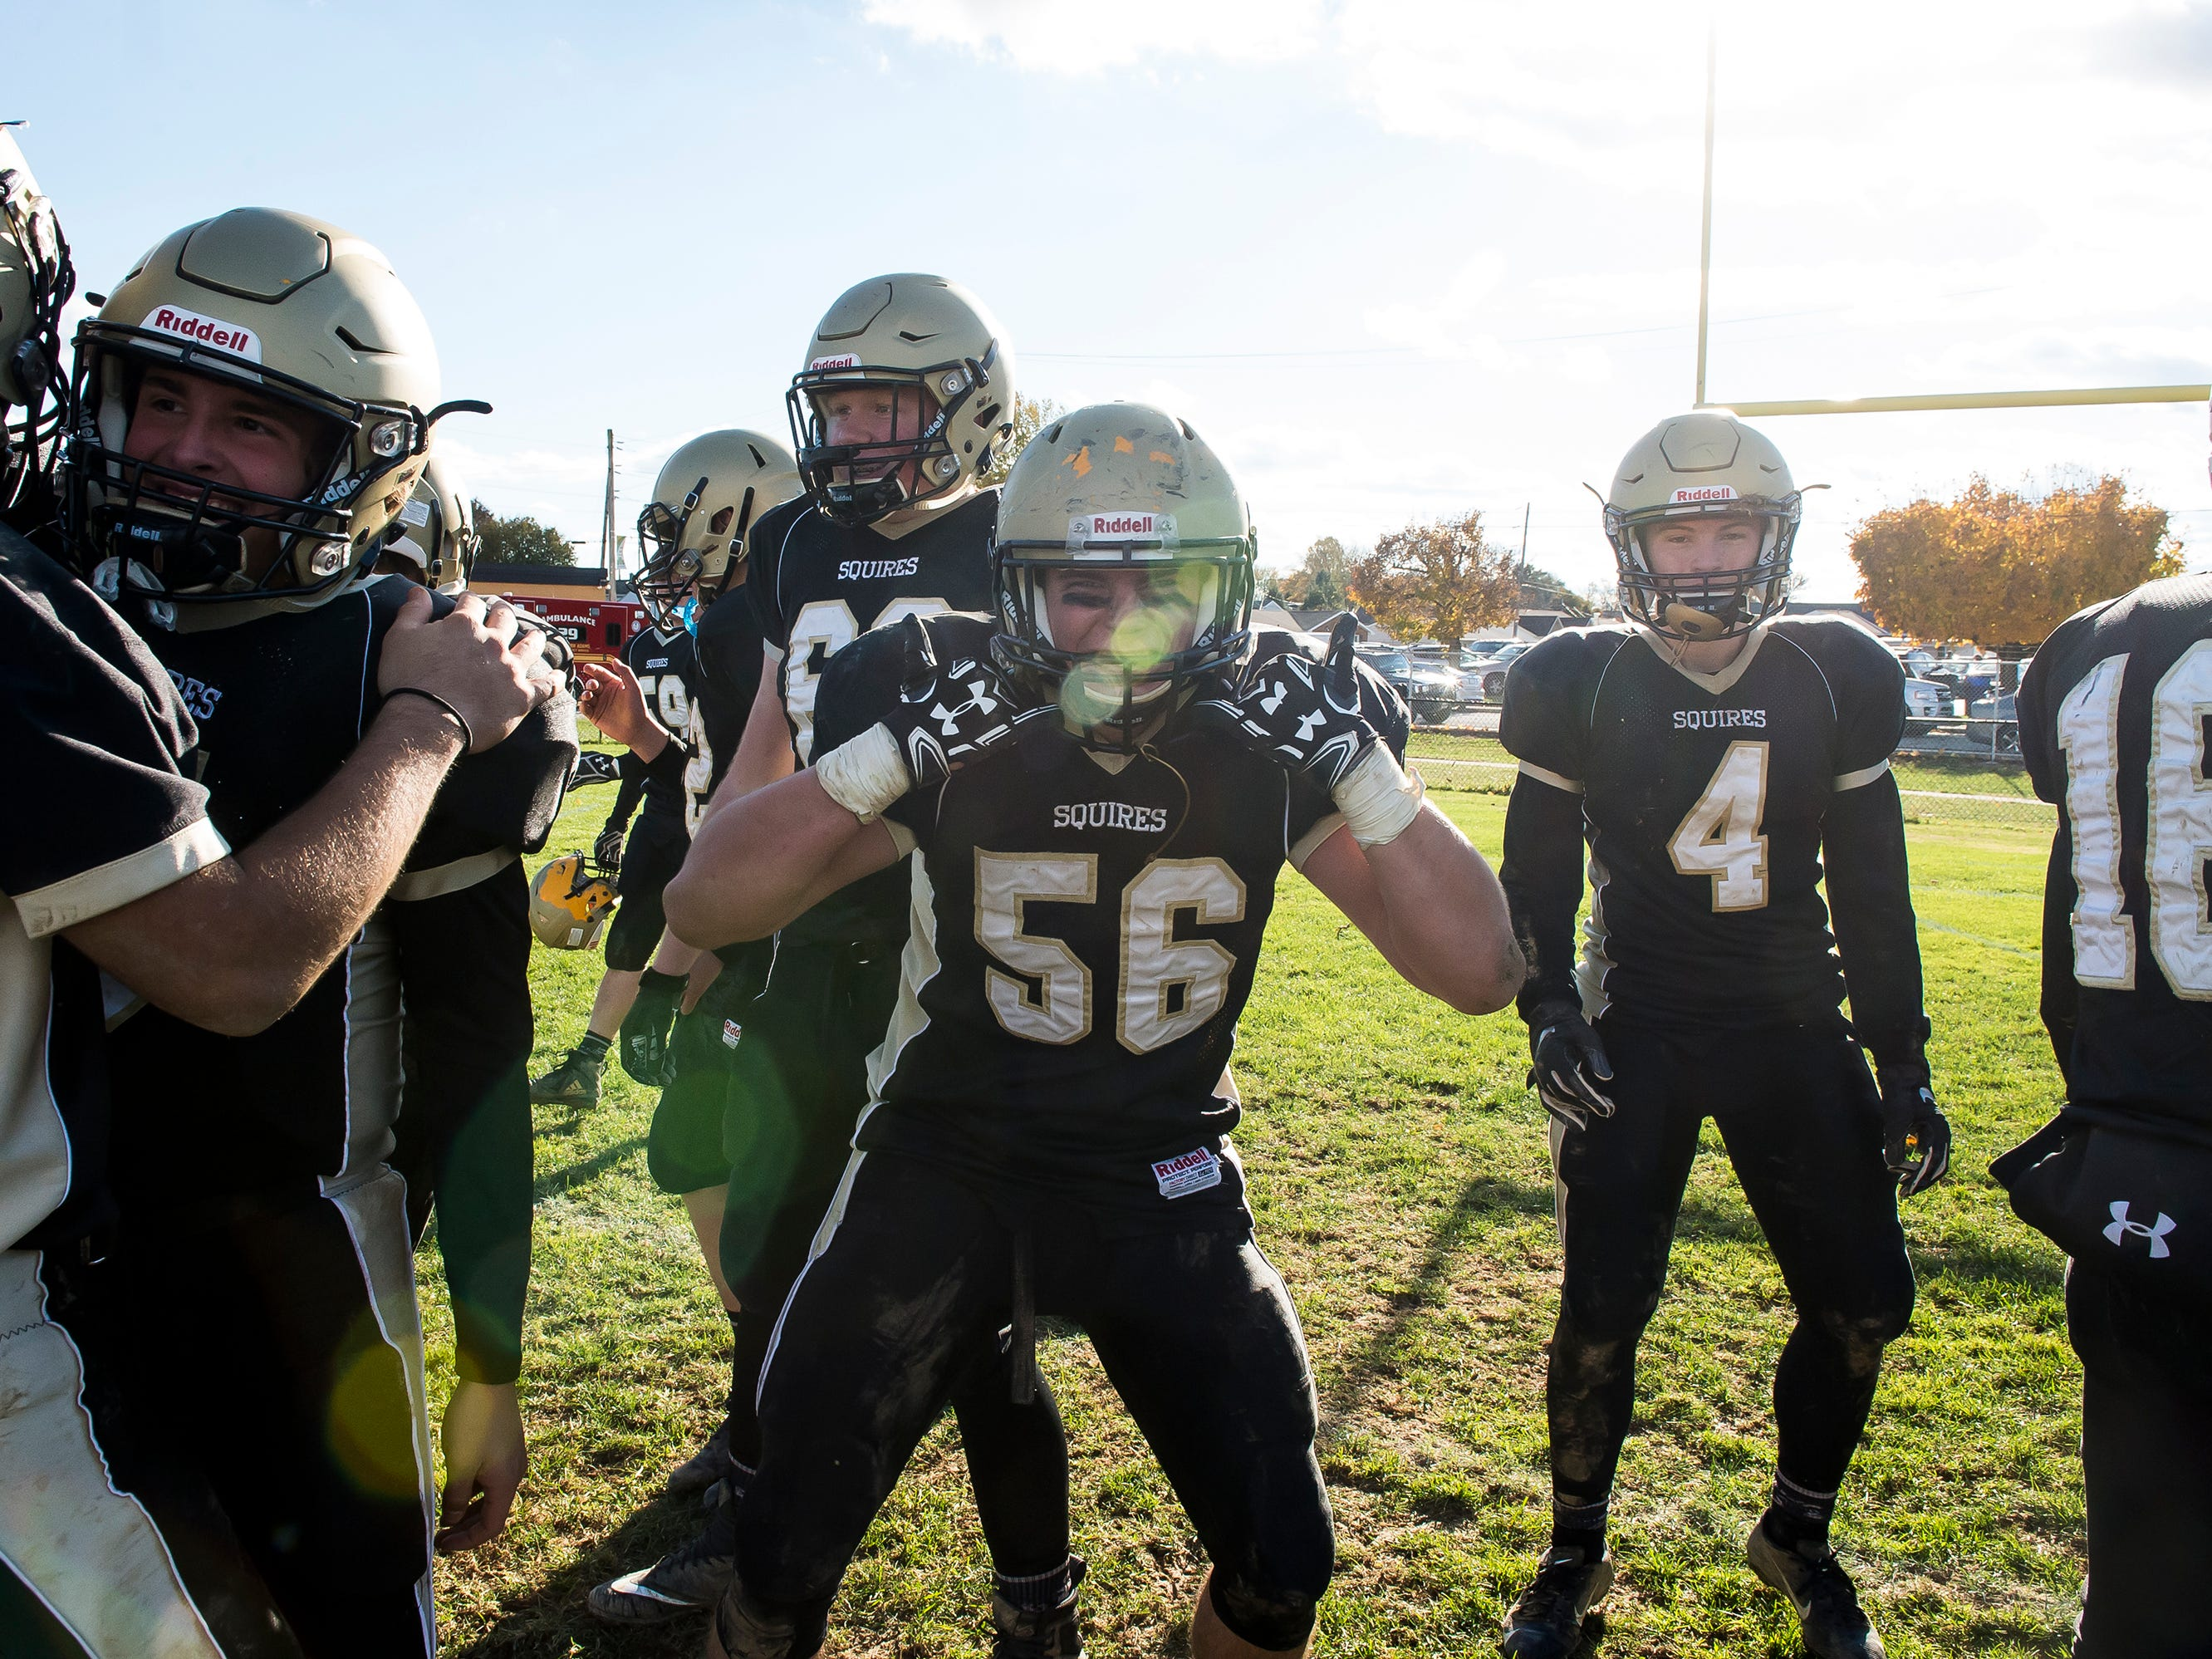 Delone Catholic's Sean Kronner (56) celebrates after defeating Upper Dauphin 48-23 in a District III Class 2A semifinal game on Saturday, November 3, 2018. The Squires will play in the District title game against York Catholic on Friday.